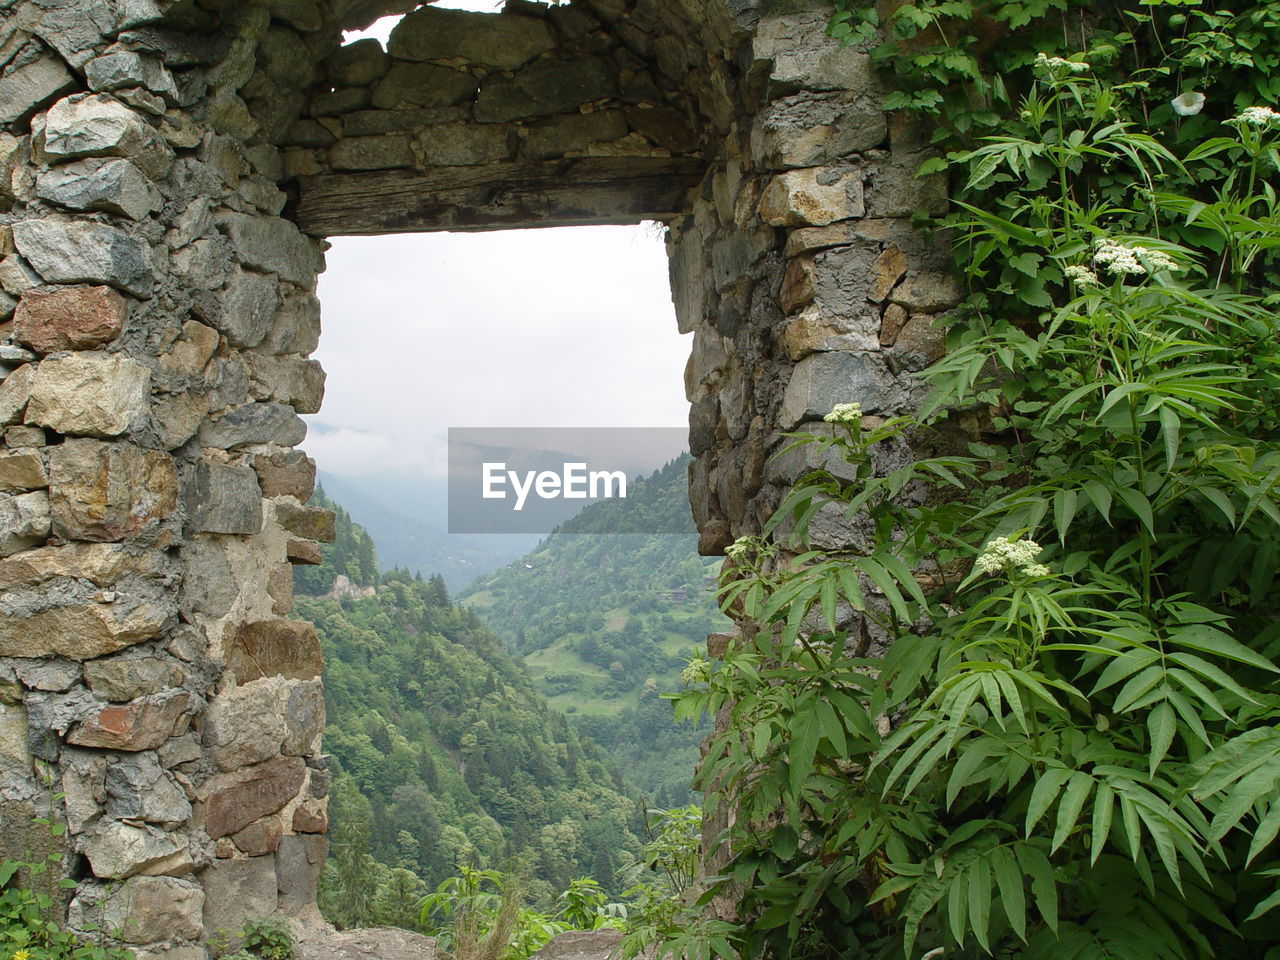 SCENIC VIEW OF MOUNTAINS AGAINST TREES